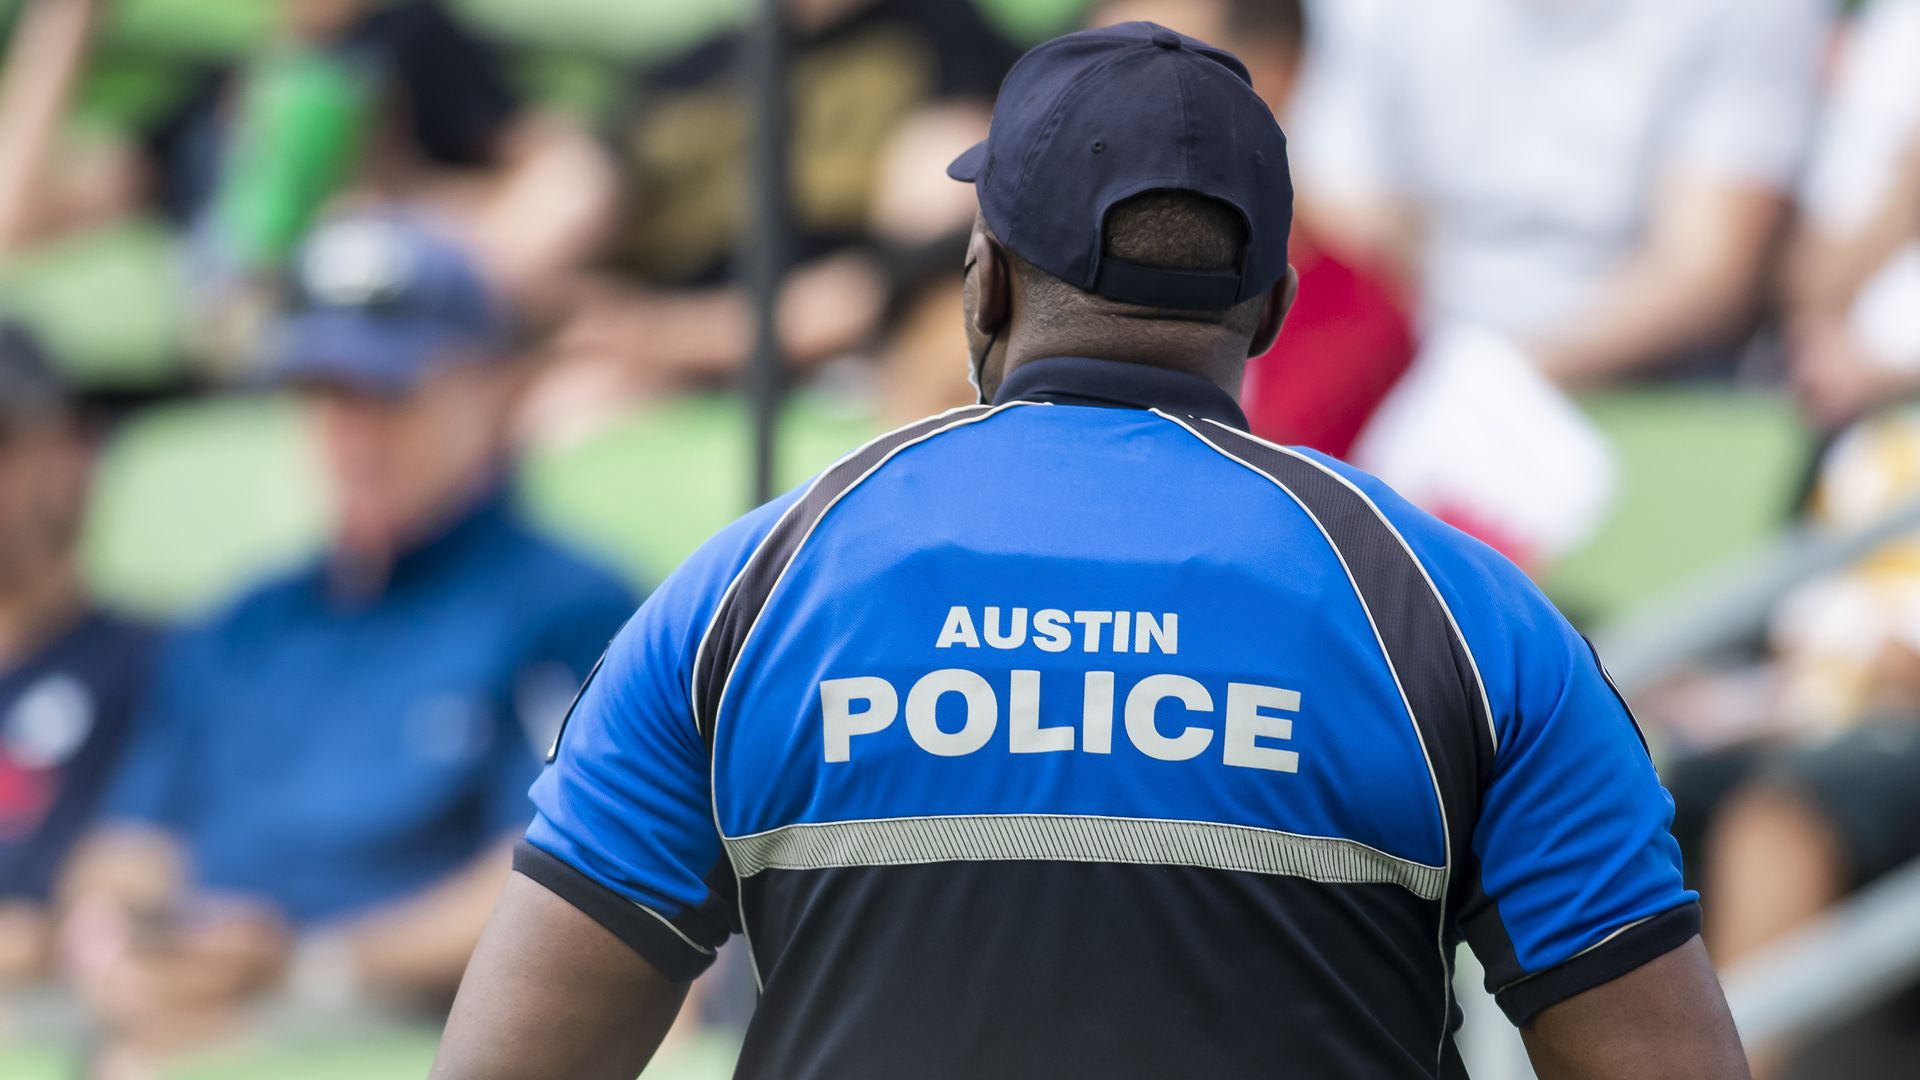 An Austin police officer stands watch at soccer match in Austin in July.